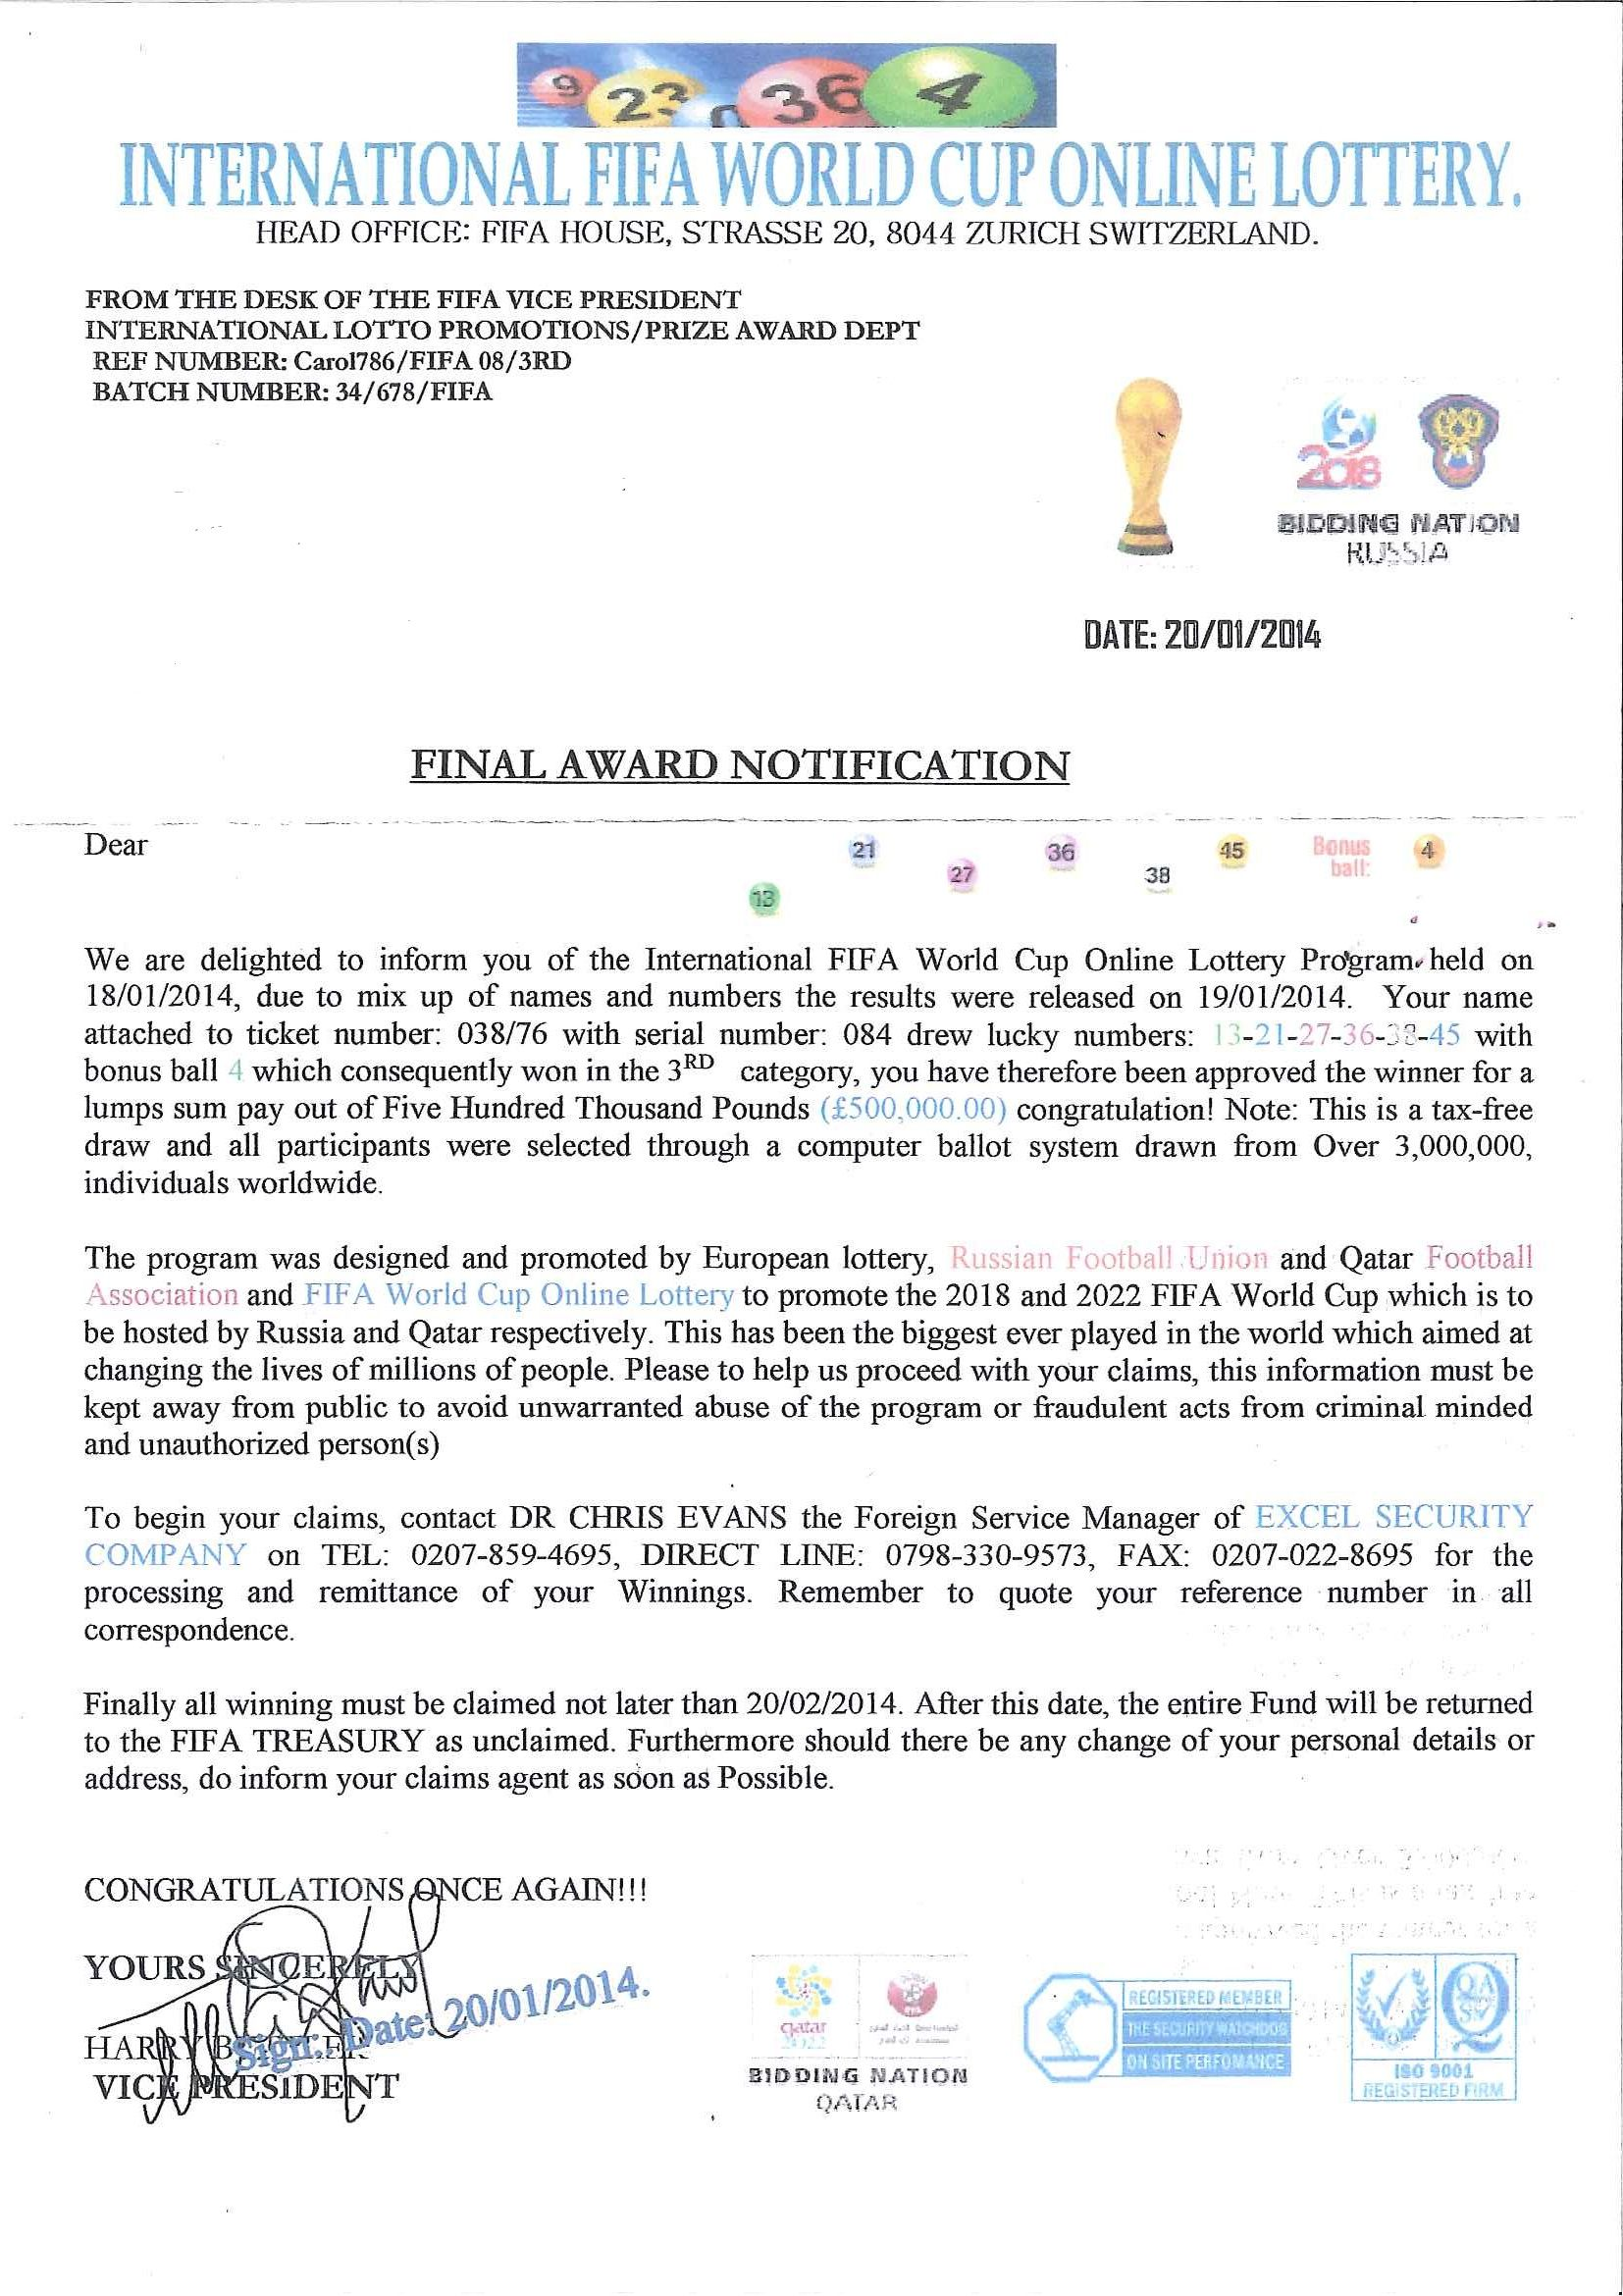 International FIFA World Cup Online Lottery scam letters